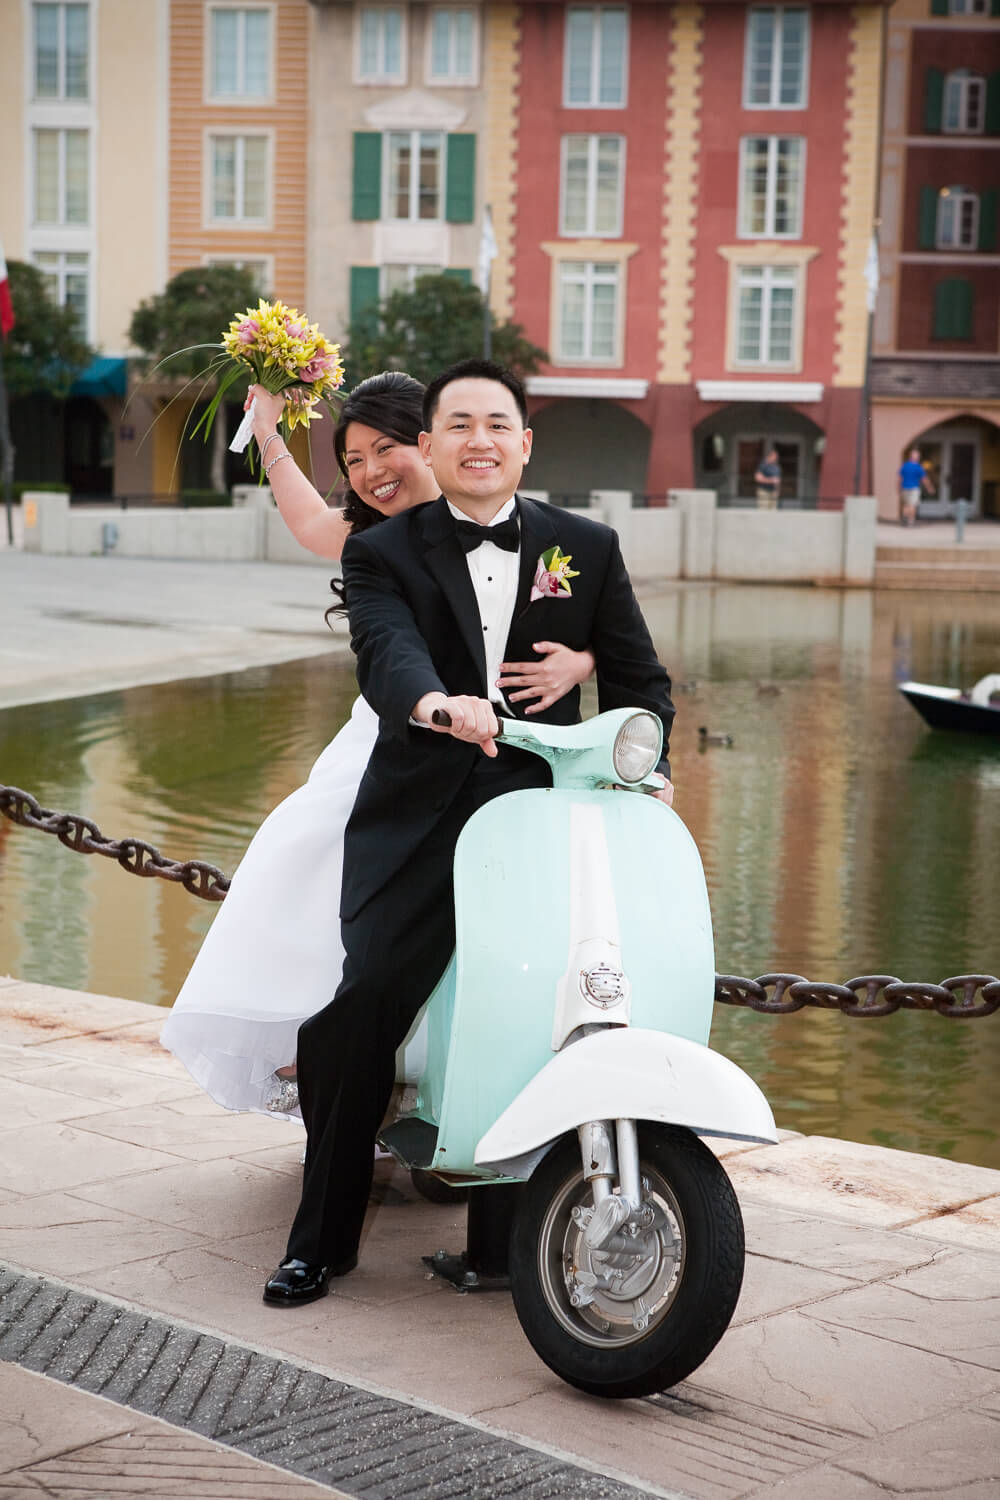 Universal Loews Portofino Bay Hotel wedding photos